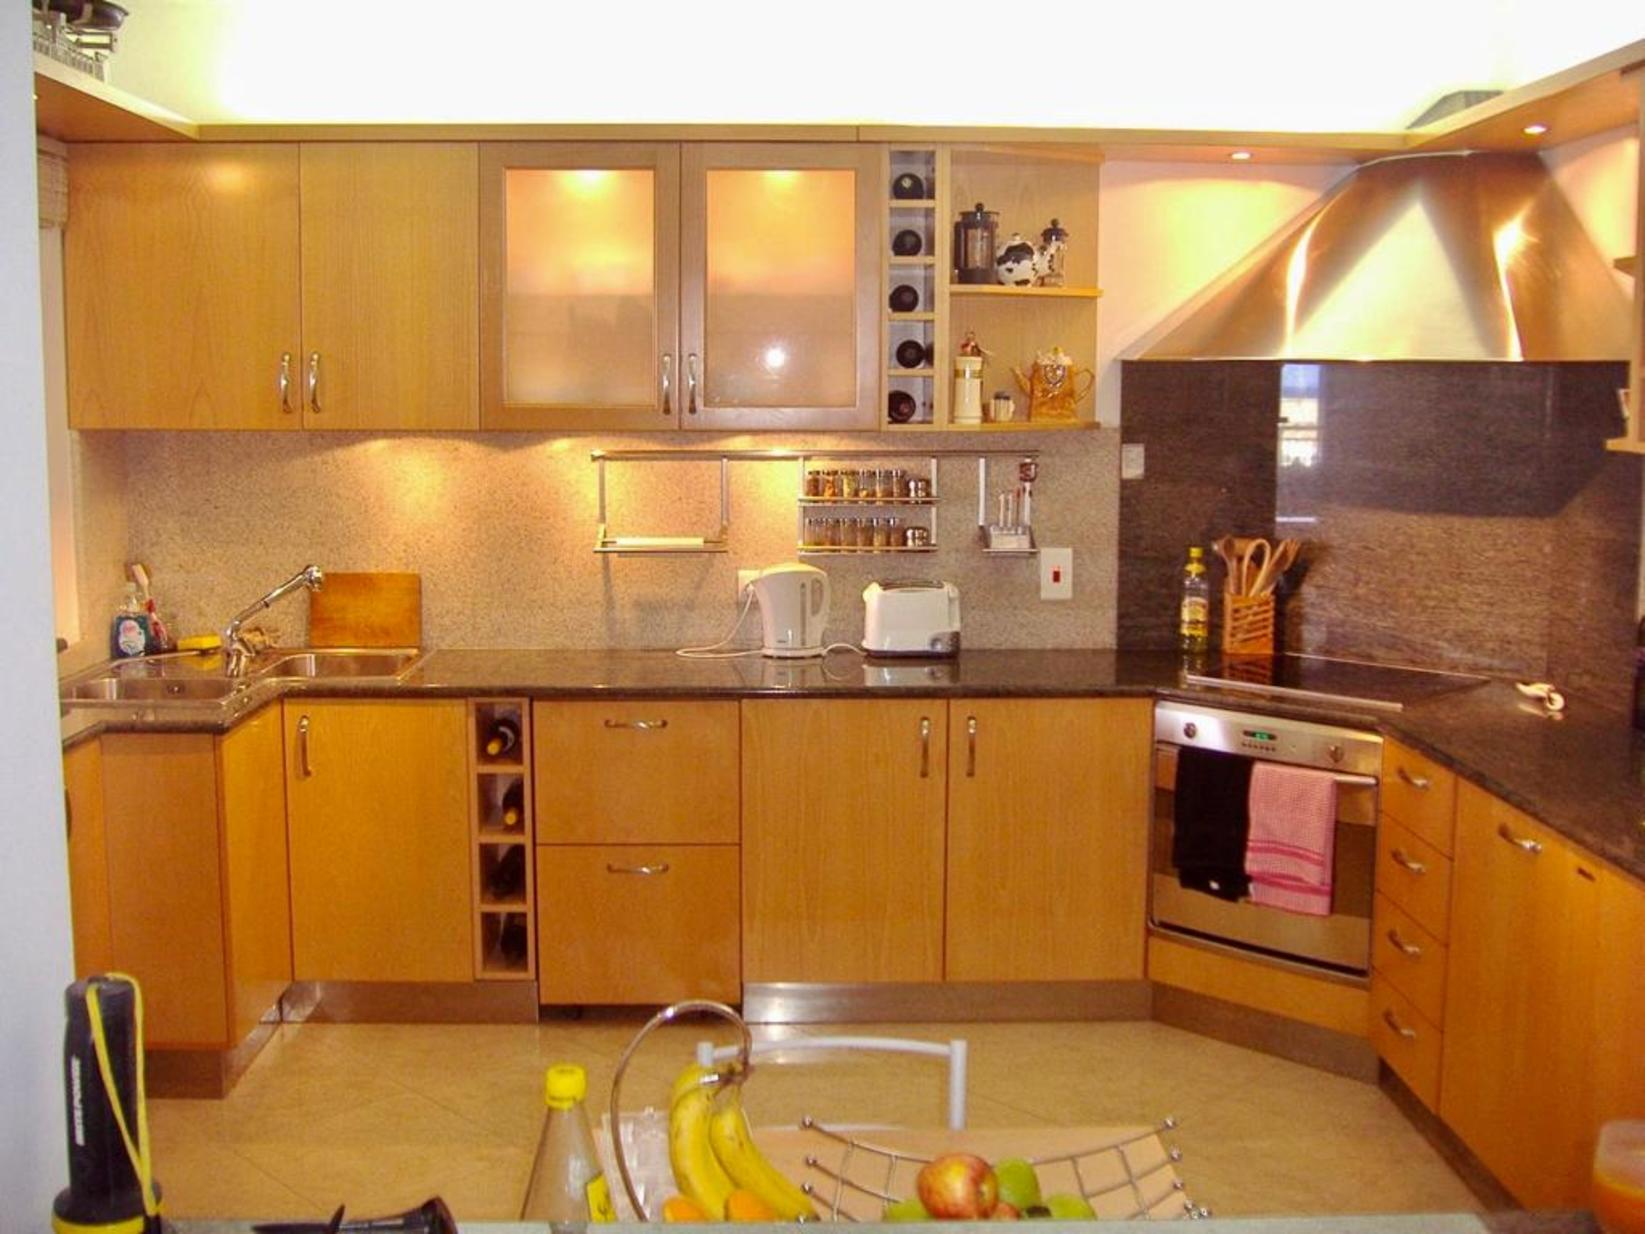 4 bed Apartment For Rent in St Julians, St Julian's - thumb 6